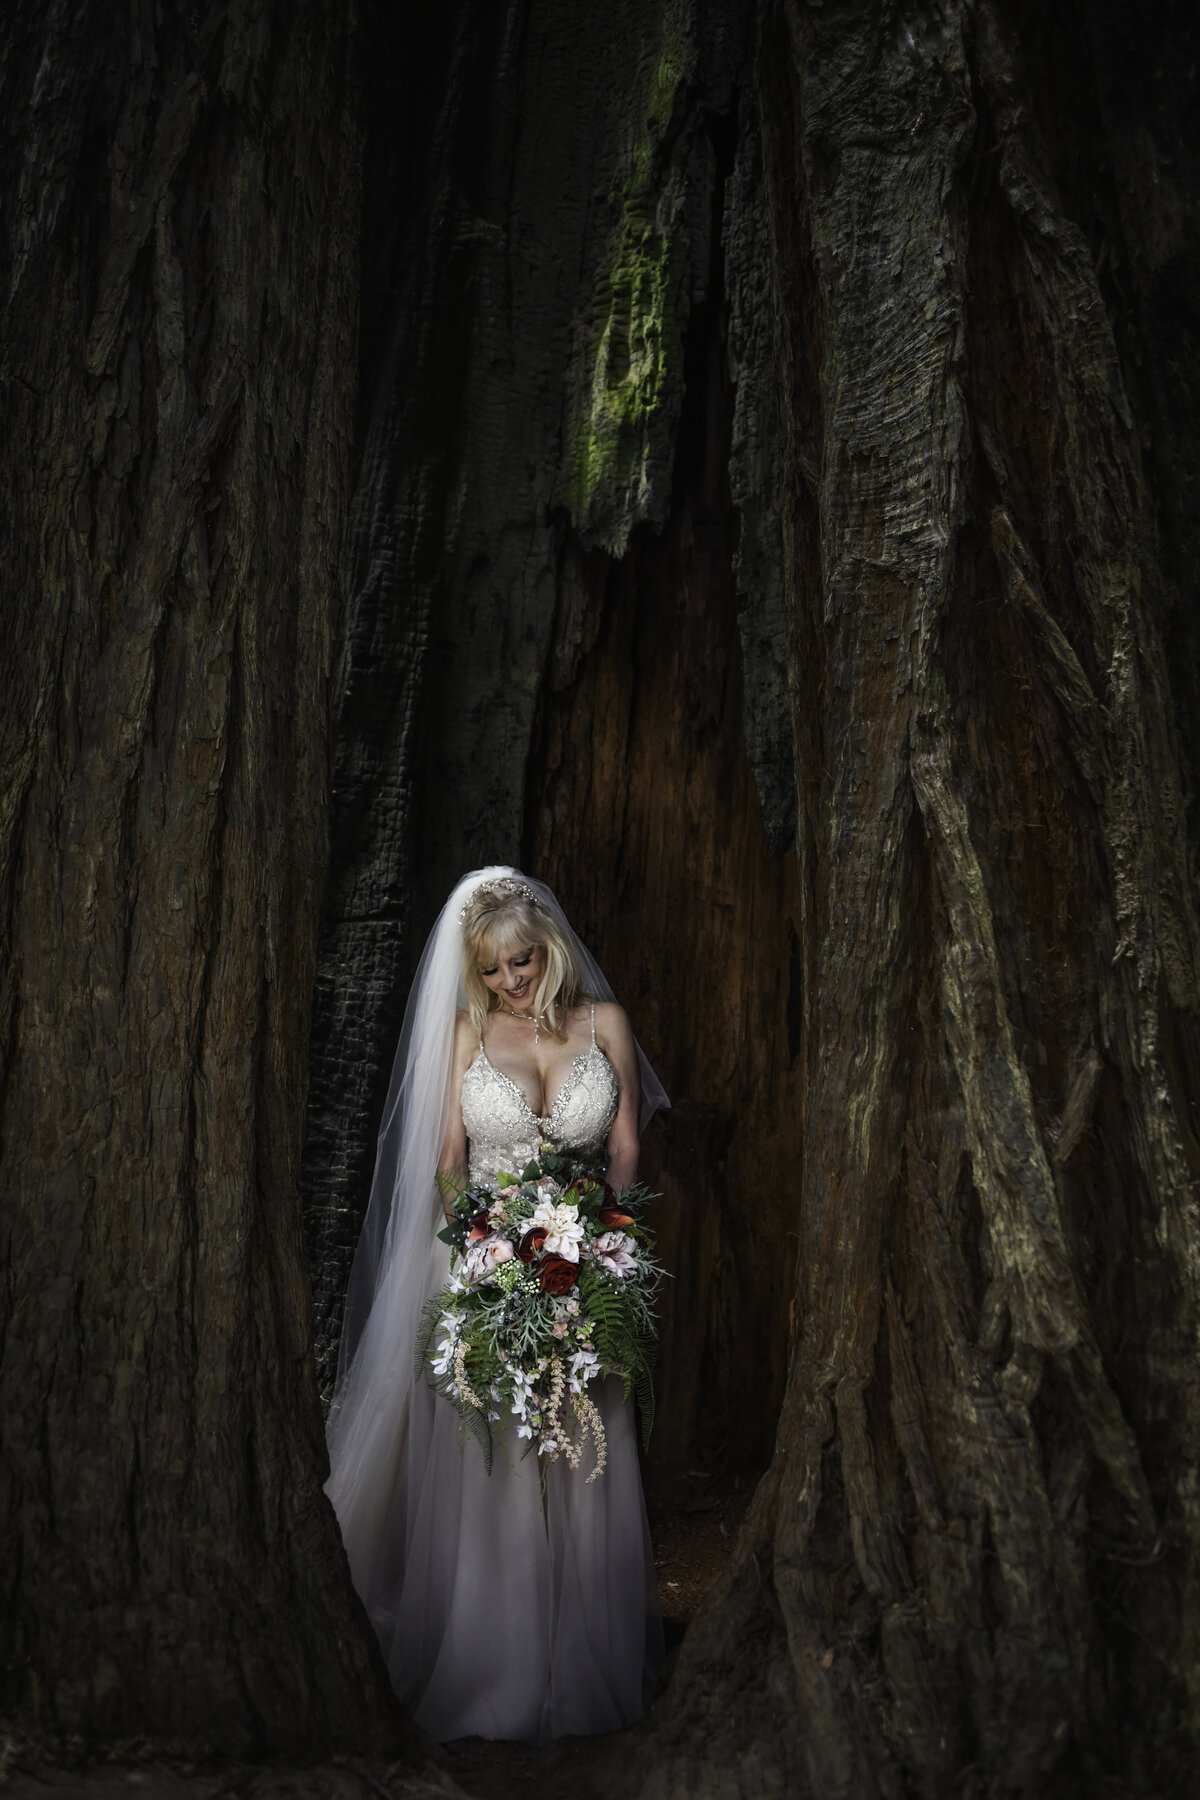 Redway-California-elopement-photographer-Parky's-Pics-Photography-redwoods-elopement-Avenue-of-the-Giants-Pepperwood-California-20.jpg